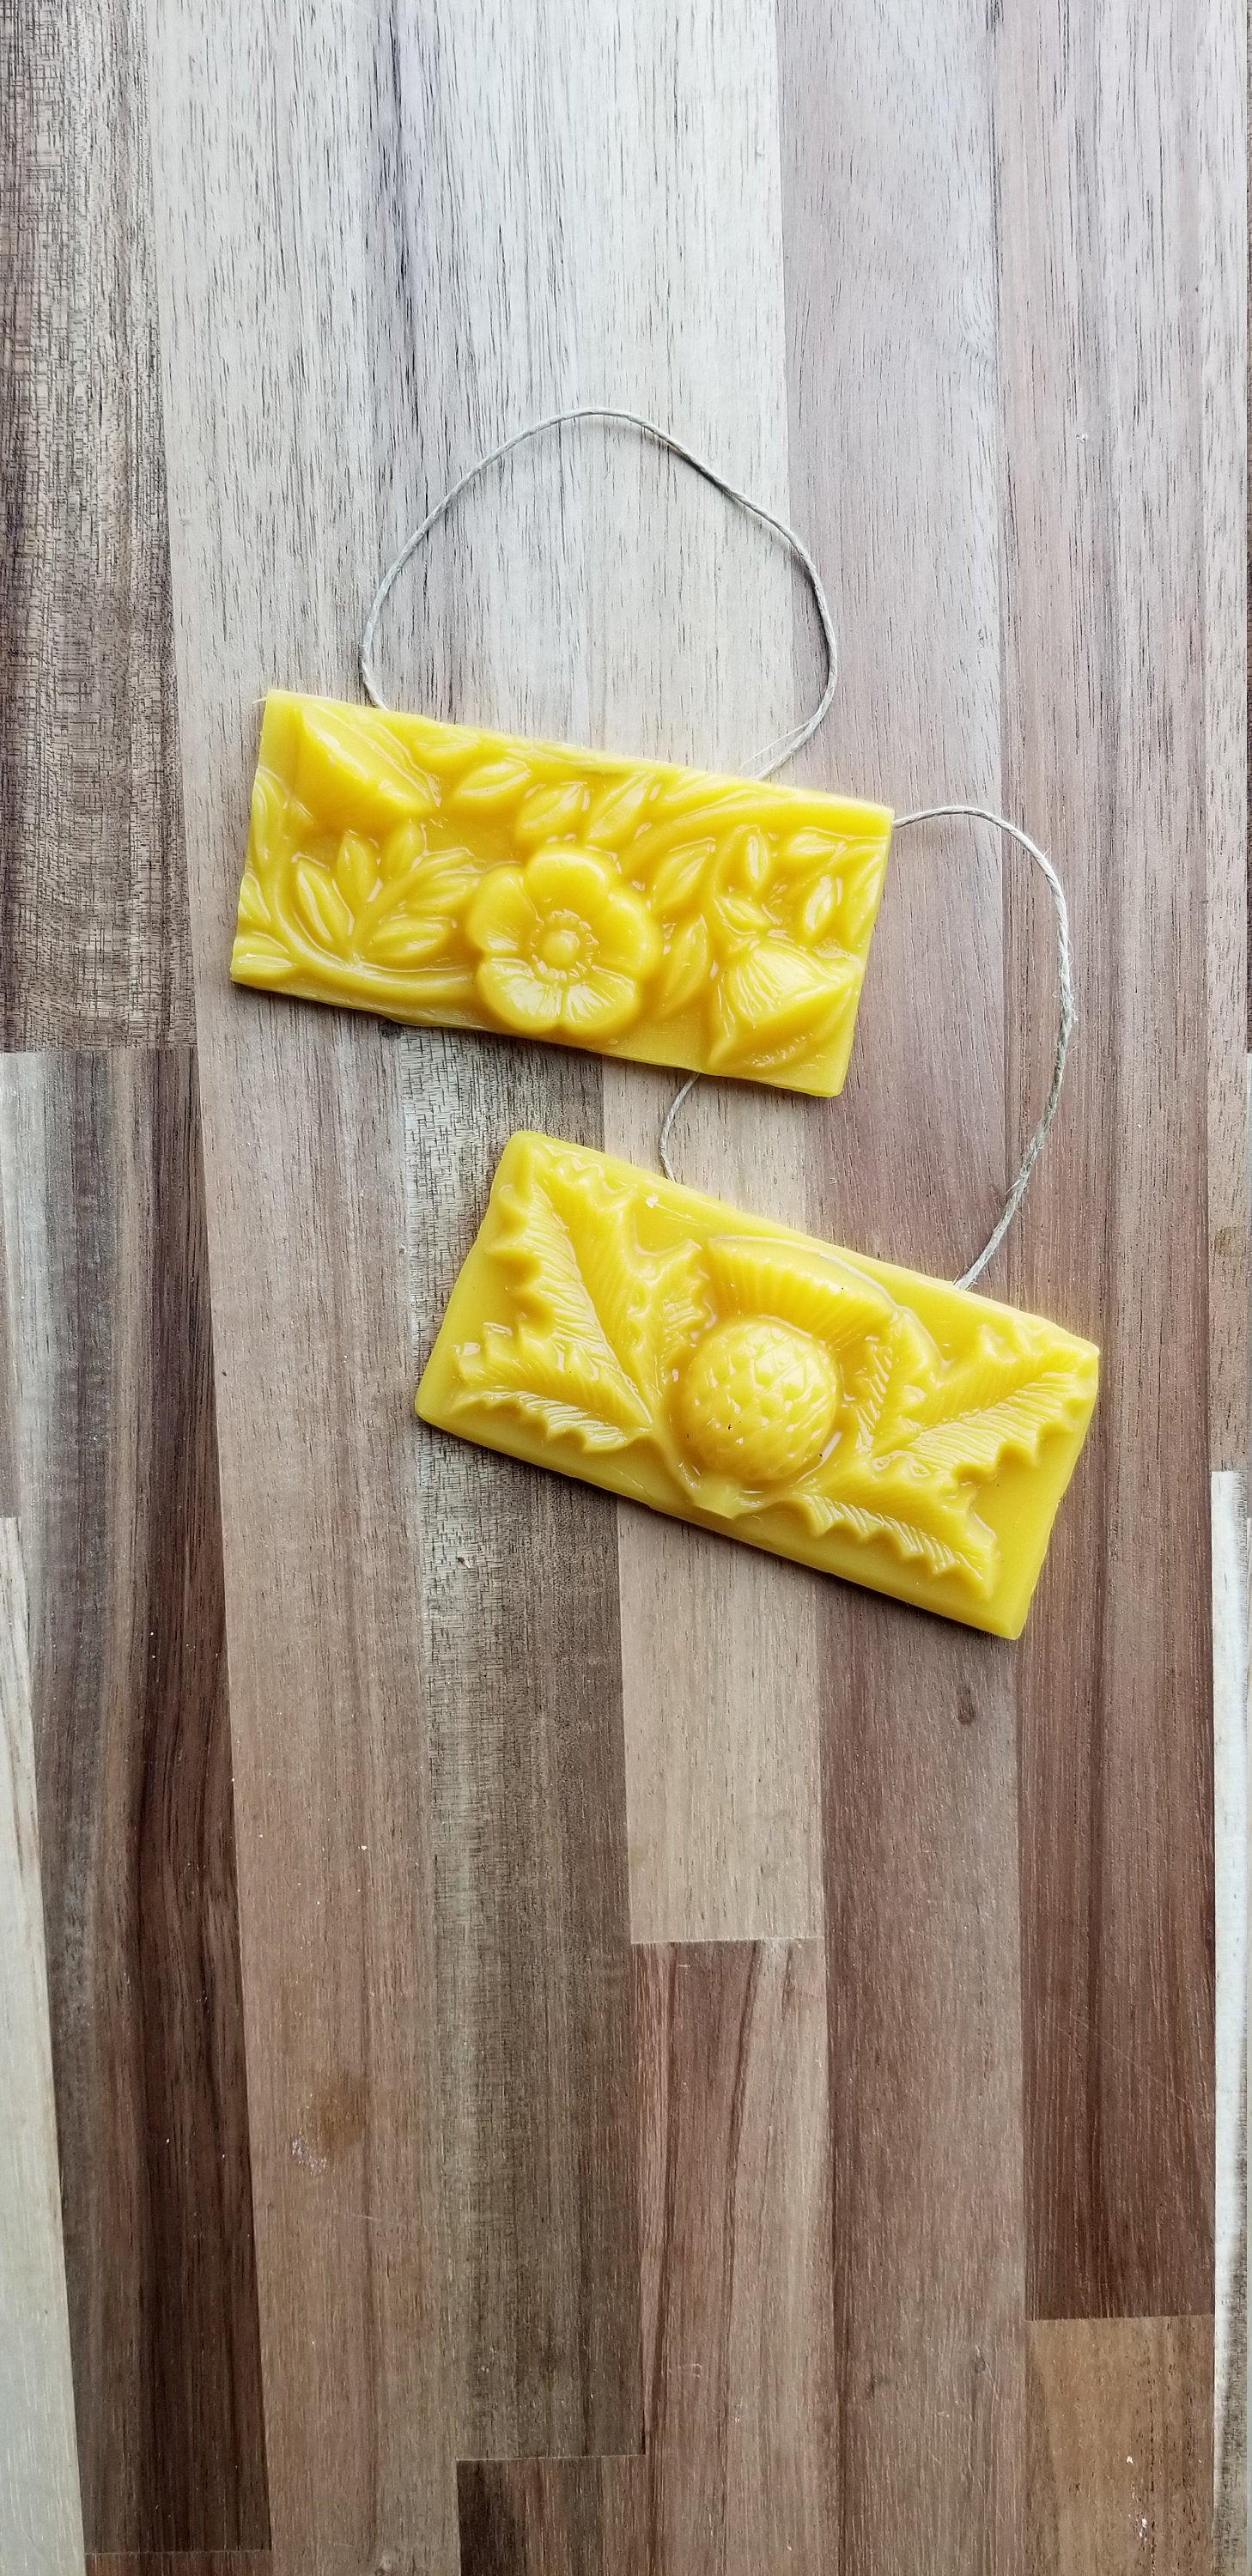 Scottish Thistle and Flower Ornaments - Yellow Beeswax